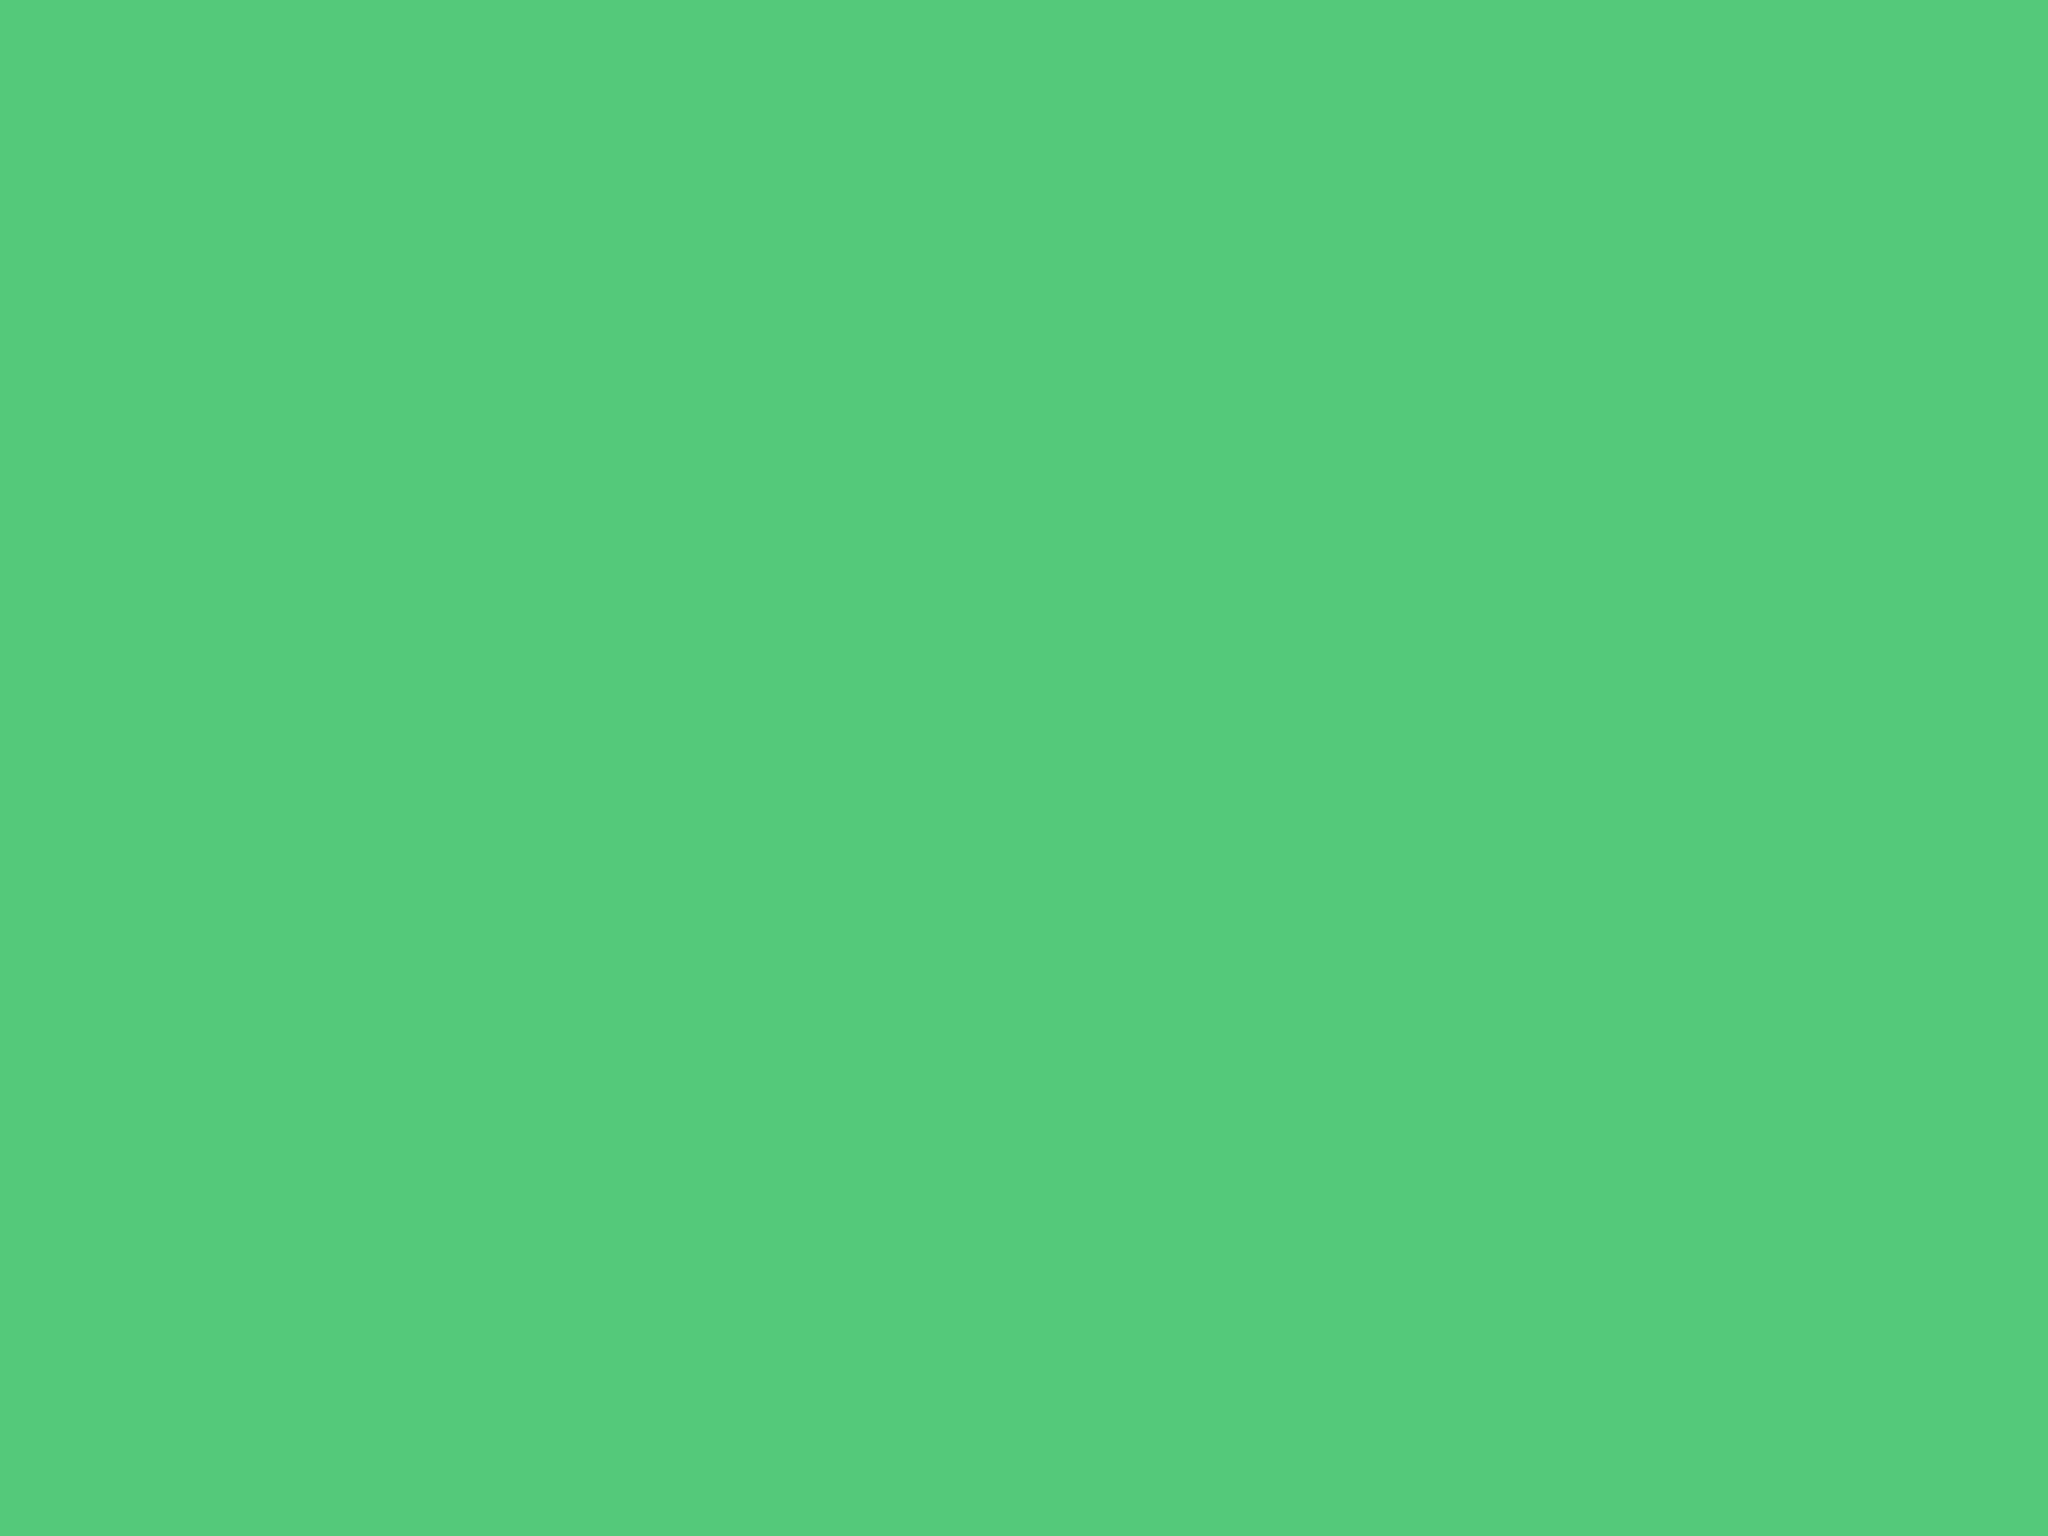 2048x1536 Paris Green Solid Color Background